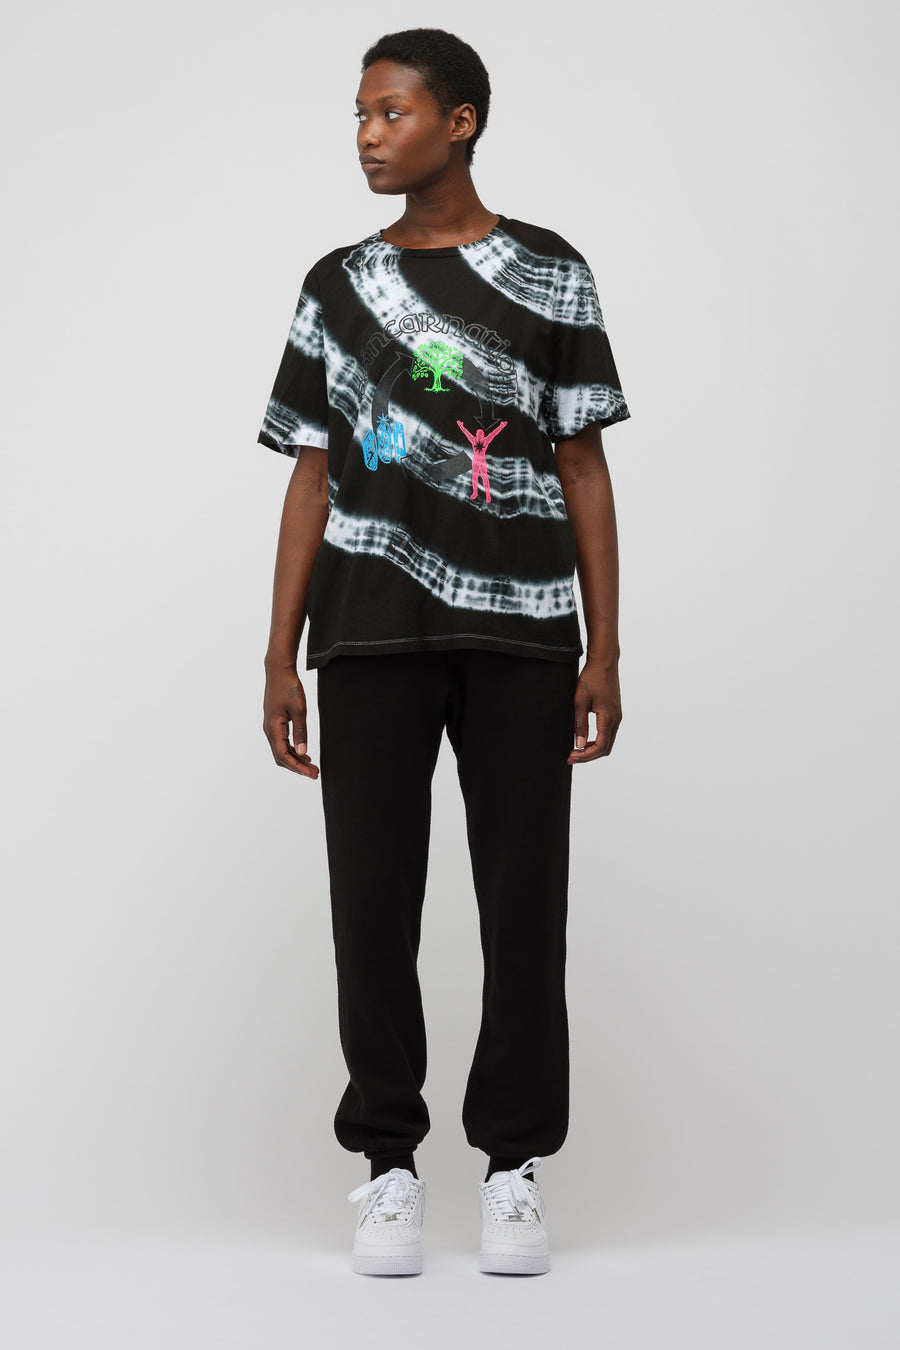 Ashley Williams Reincarnation T-Shirt in Black Tie Dye - Notre